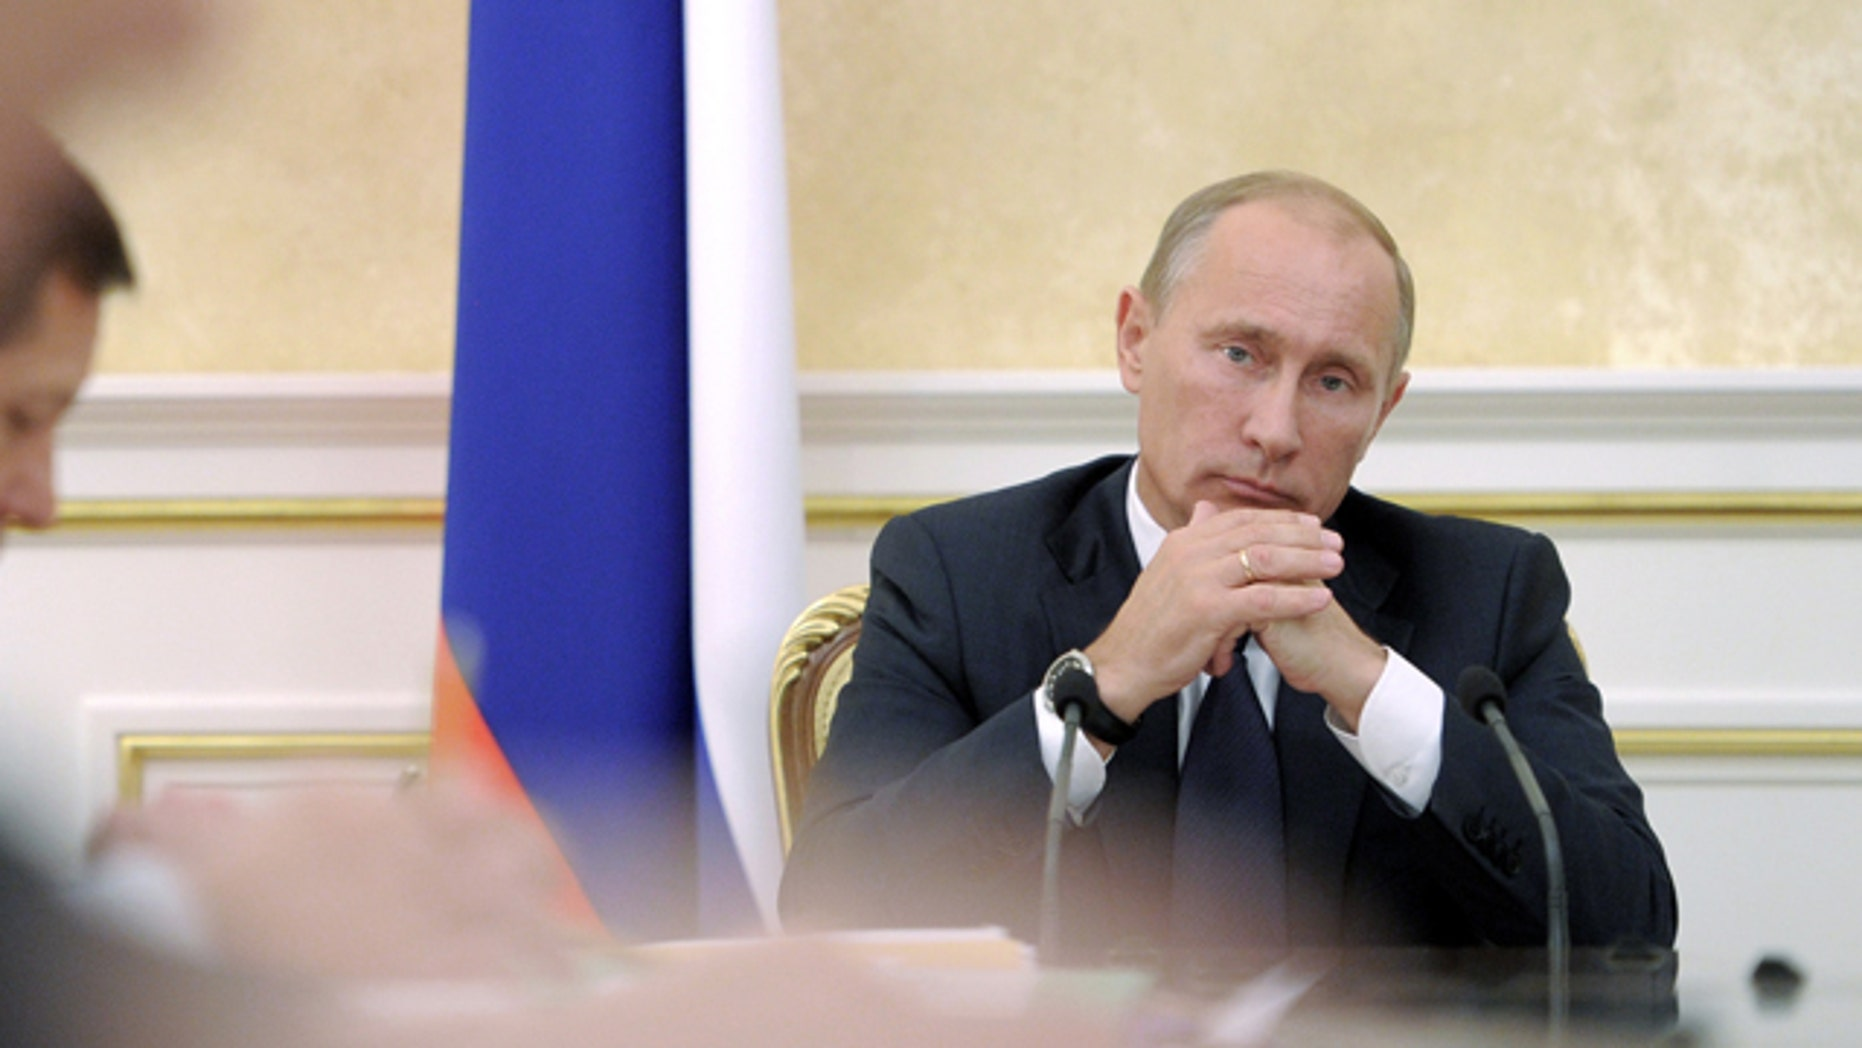 Sept. 27: Russian Prime Minister Vladimir Putin chairs a Cabinet meeting in Moscow.